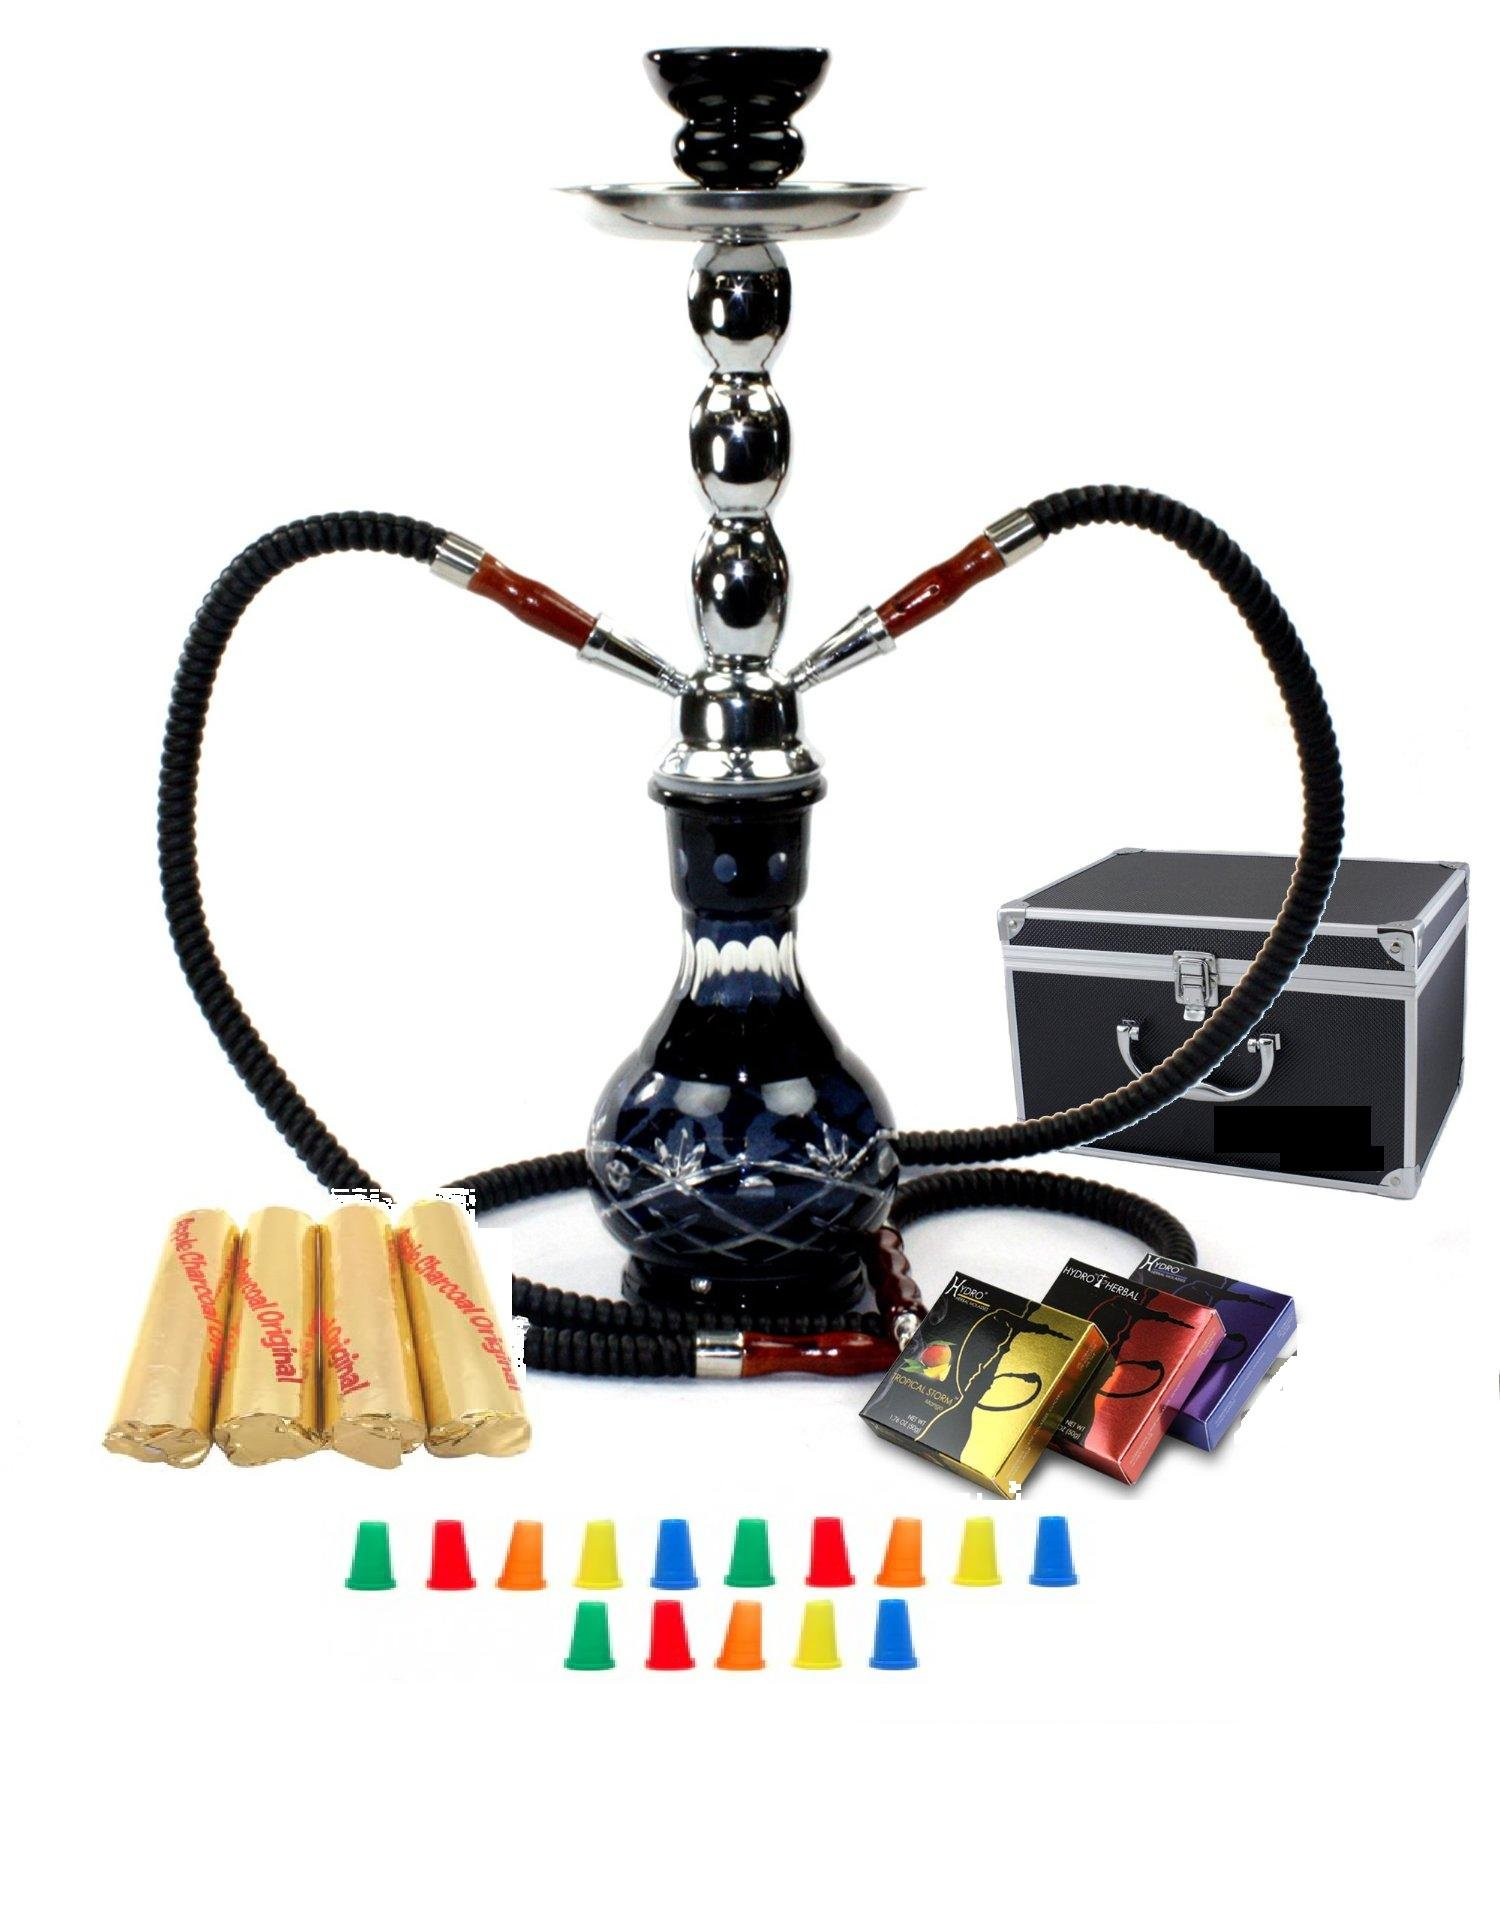 Zebra Smoke Starter Series: 18'' 2 Hose Hookah Combo Kit Set w/ Instant Charcoal (Like Three Kings Charcoal), Hydro Herbal Molasses(like Blue Mist), and Hookah Mouth Tips Smokes More Then Hookah Pen (BlacK)